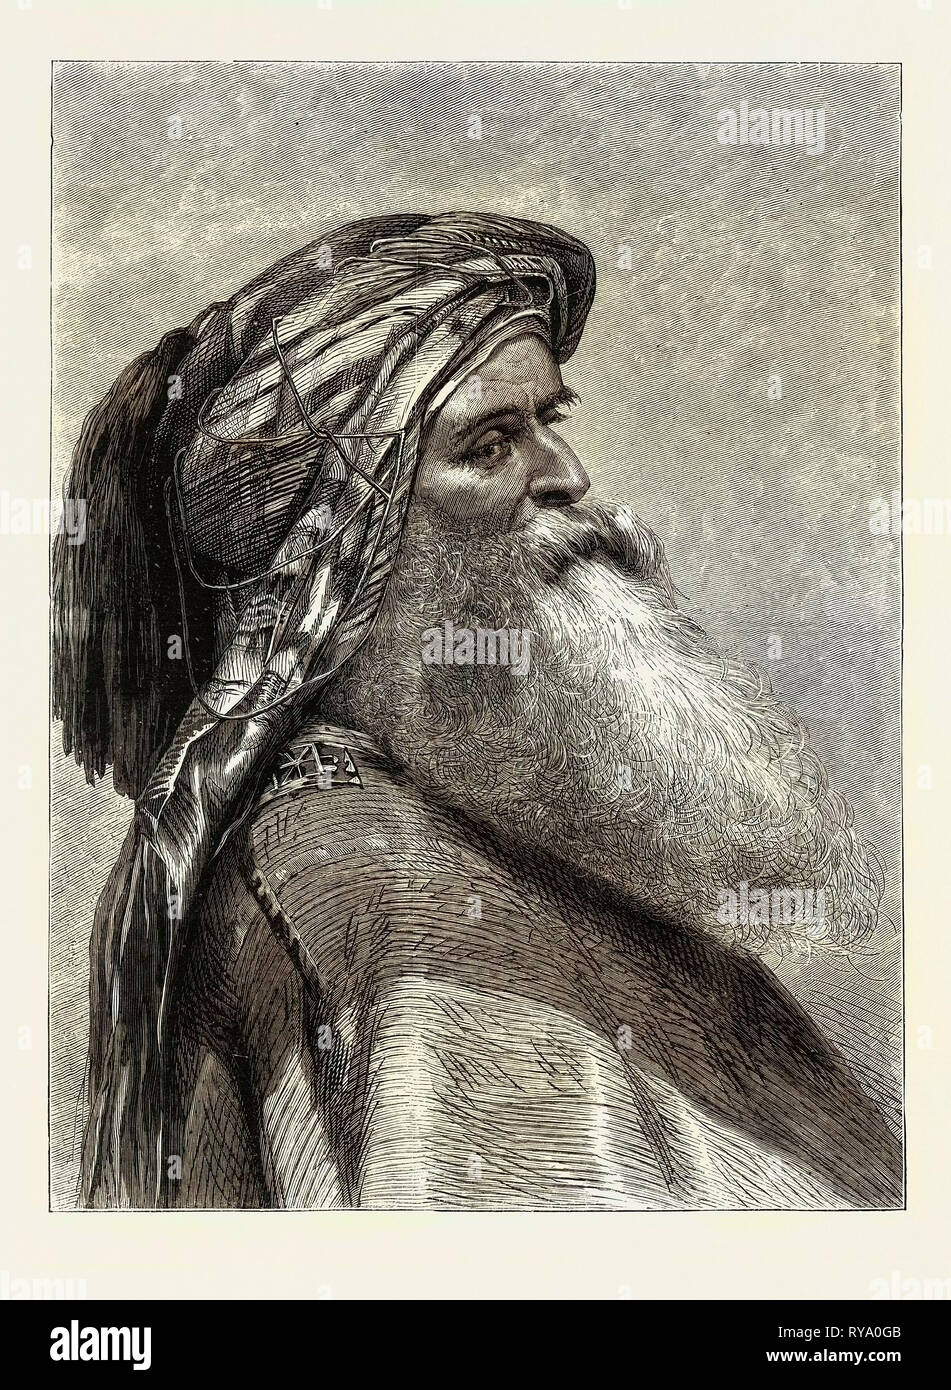 The Sheikh - Stock Image